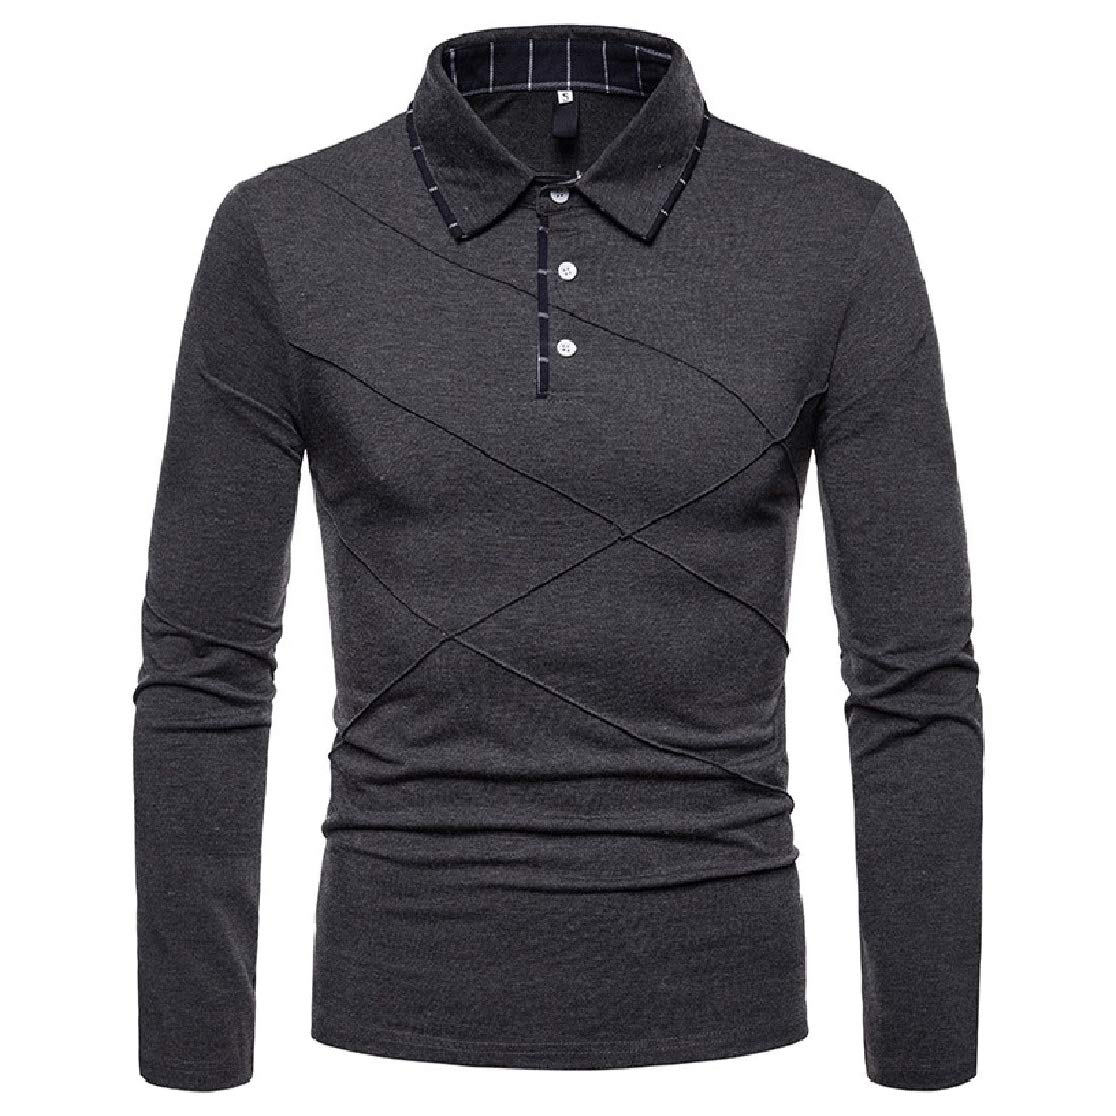 Comaba Men Pullover Lapel Collar Plus-Size Long-Sleeve Causal Polo Shirt